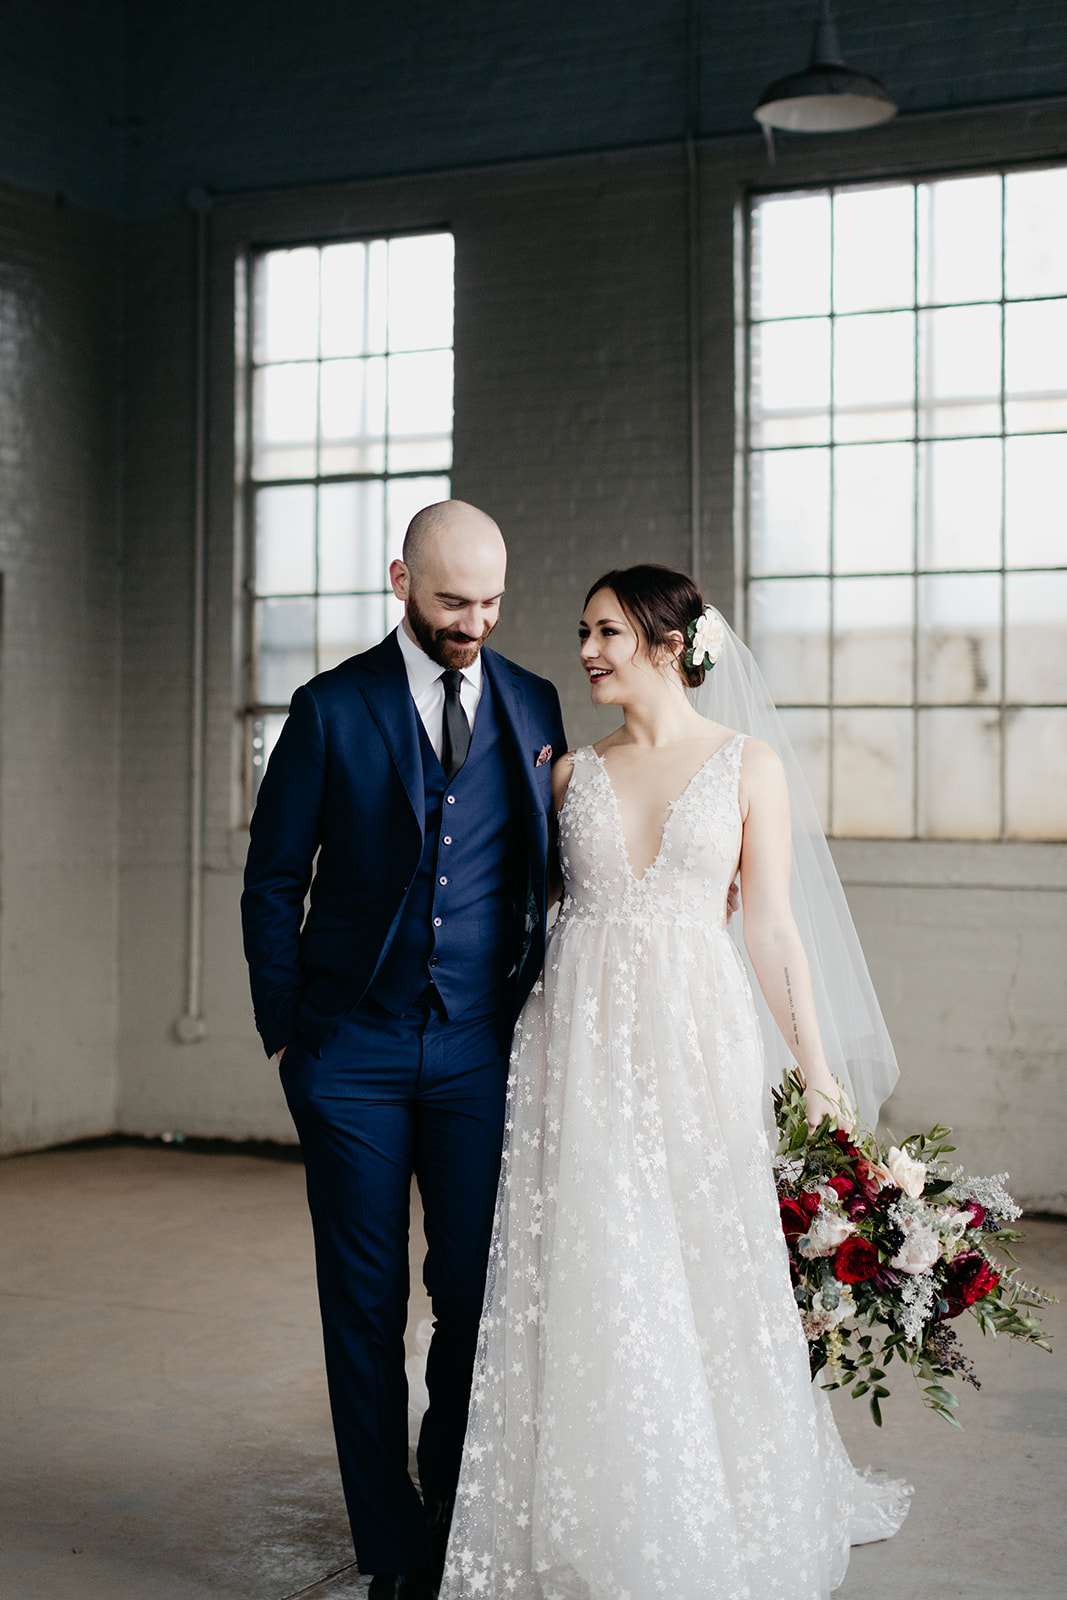 Next morning bride and groom photos! Lush bridal bouquet with peonies, garden roses, and anemones. Nashville, TN luxury wedding floral design.